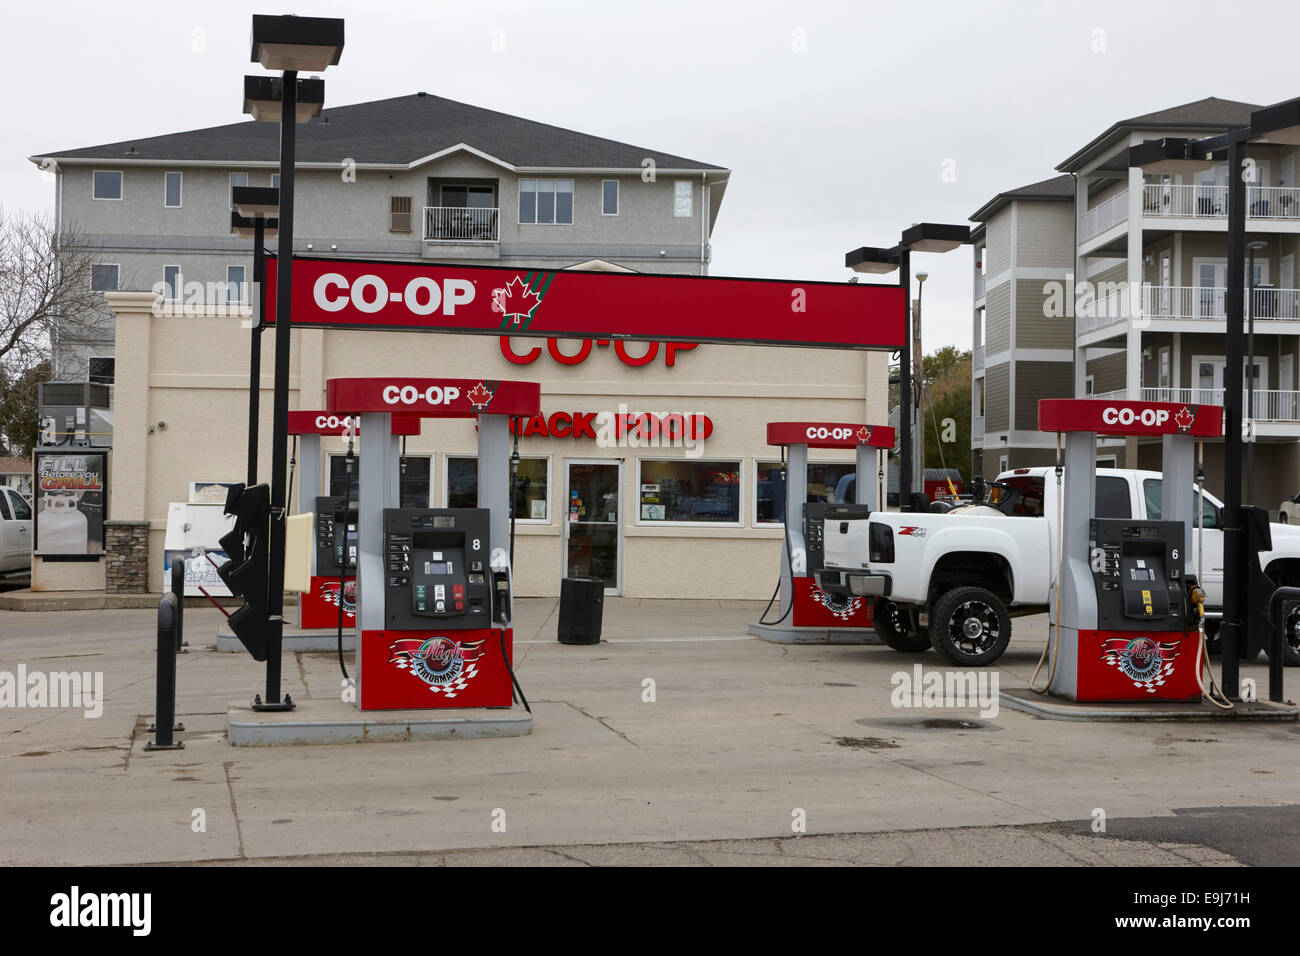 co-op gas self service station Saskatchewan Canada - Stock Image